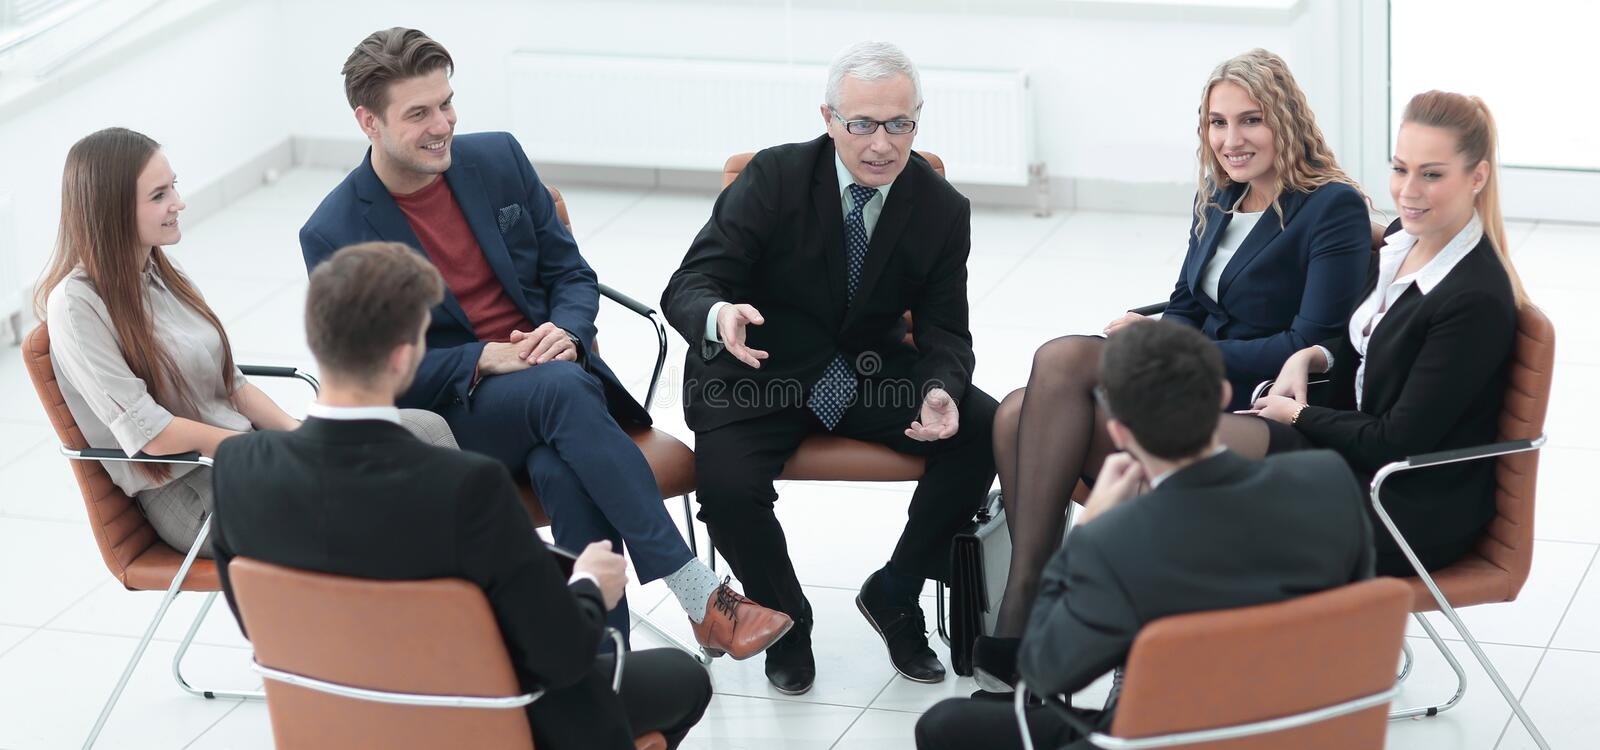 Businessman Leading Meeting At Boardroom stock photo